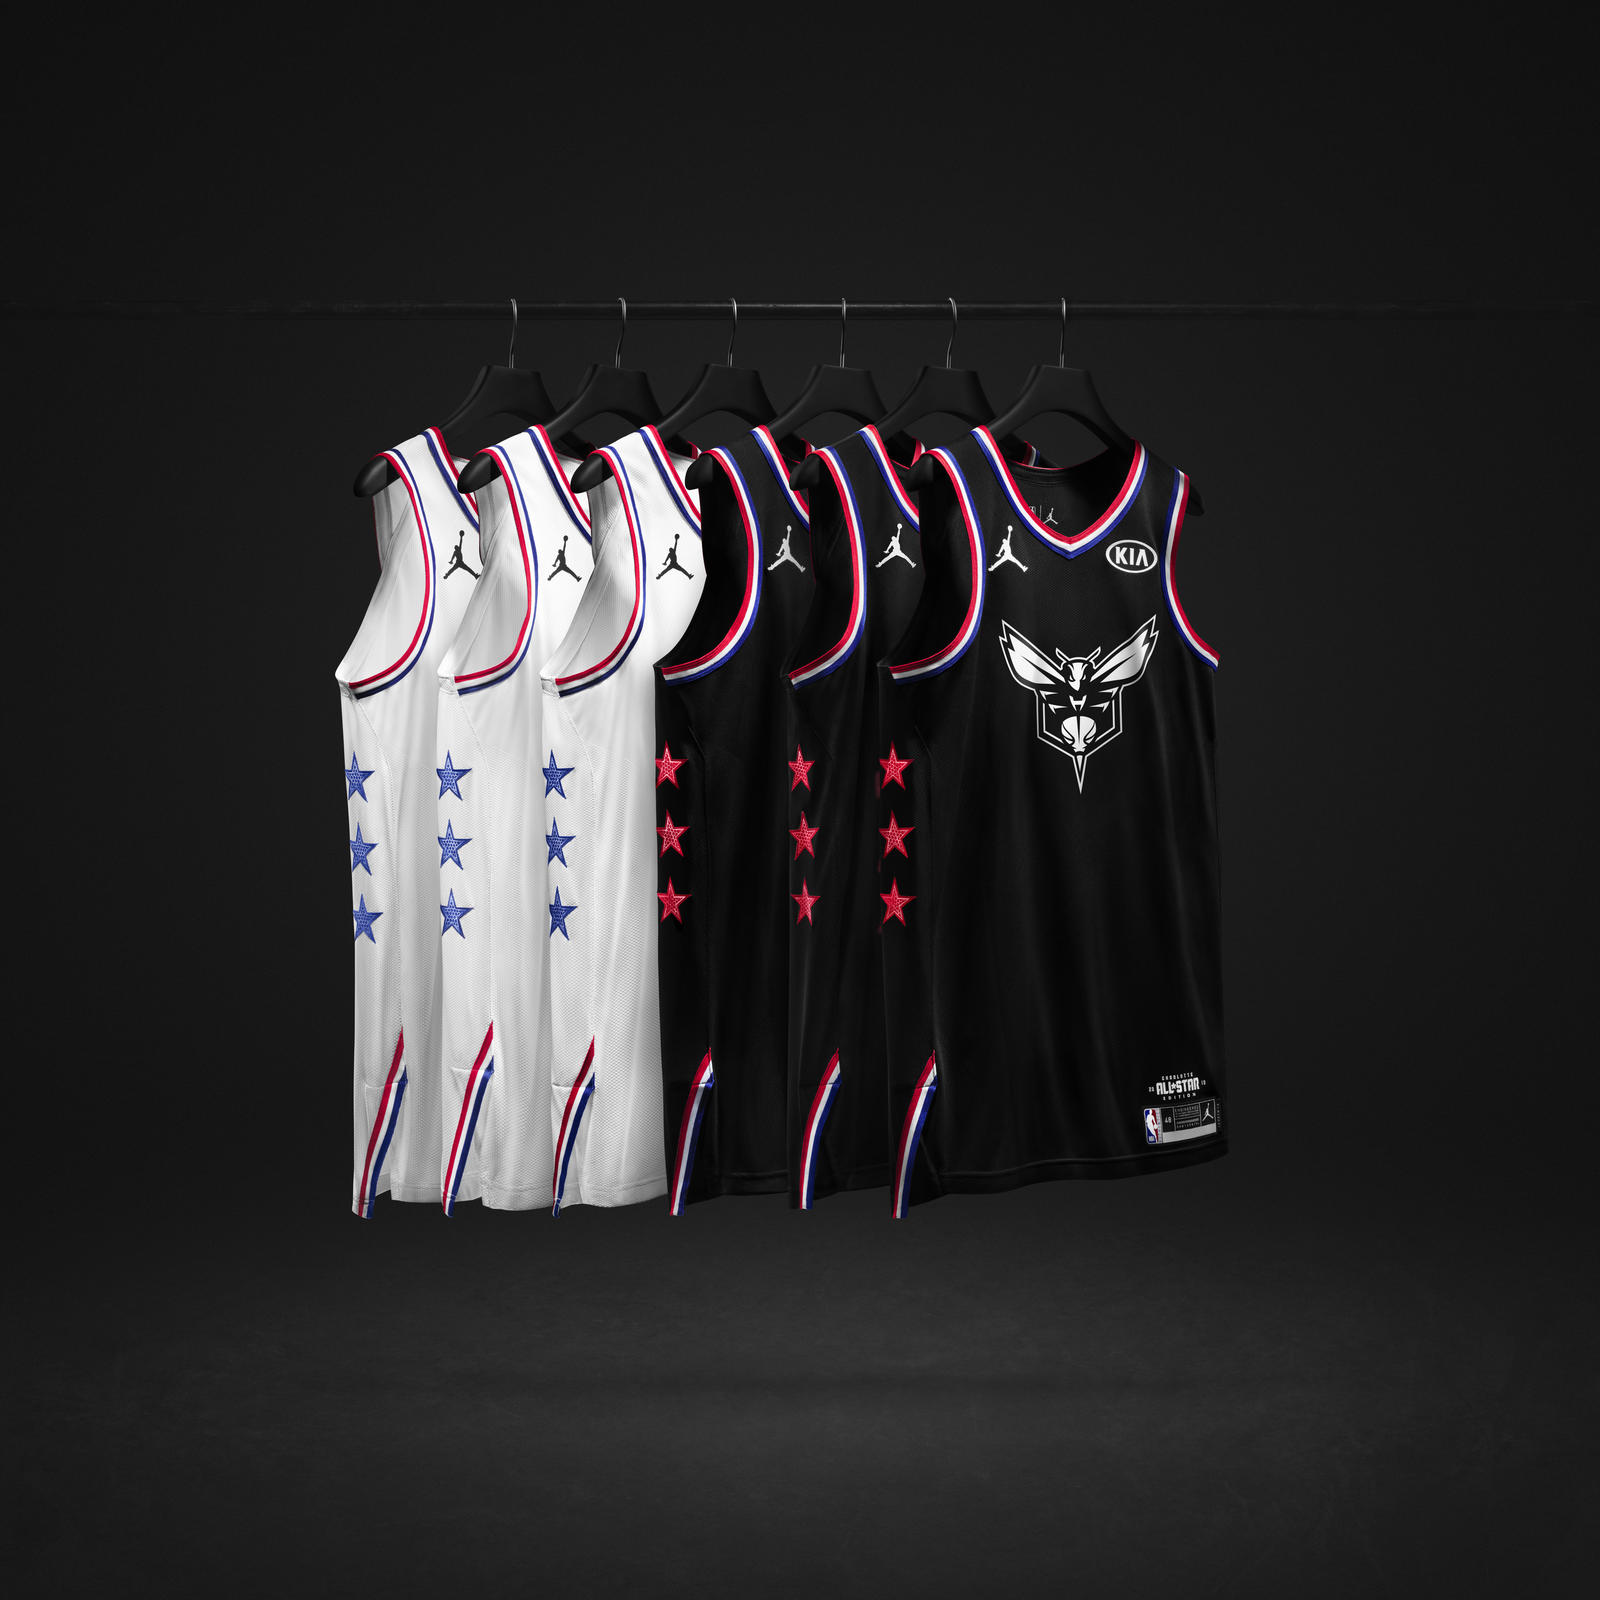 2019 Jordan Brand NBA All Star Edition Uniforms Nike News